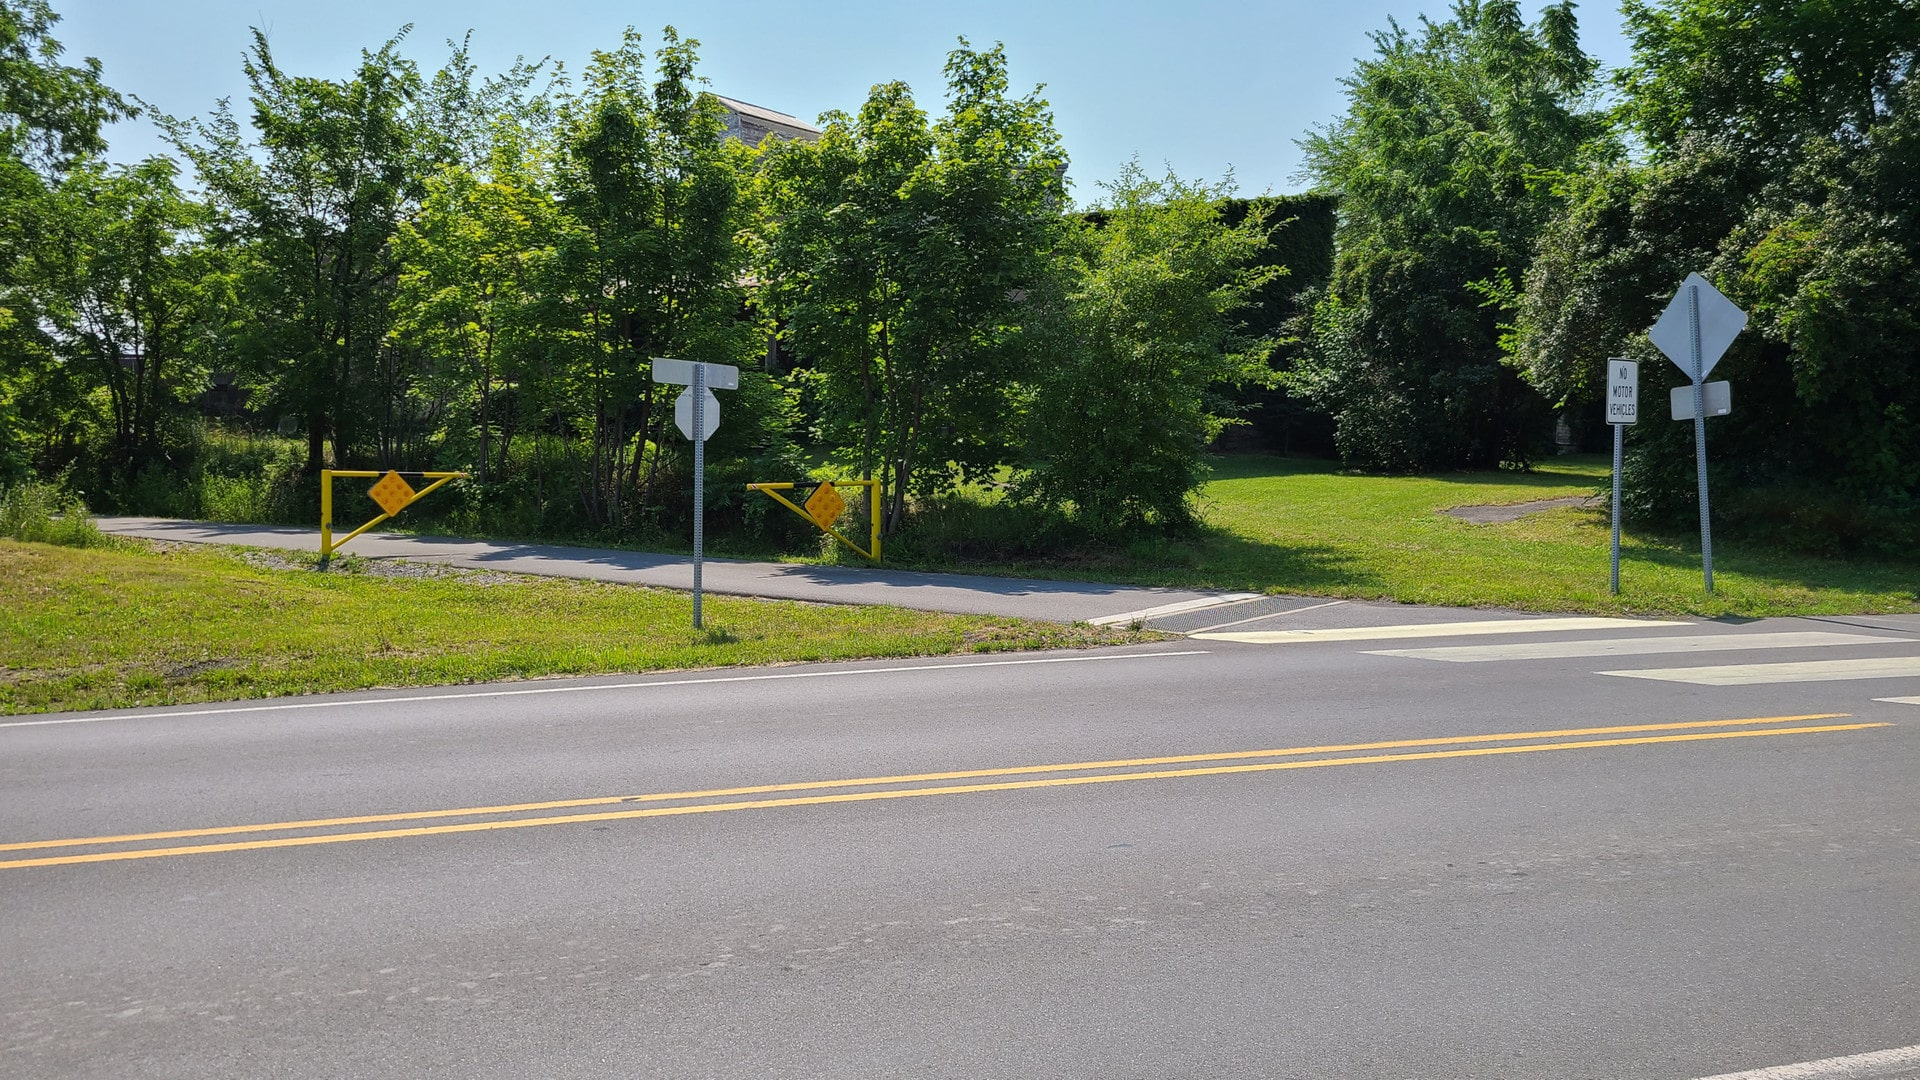 """A paved bike trail emerges from the woods and crosses the road at an angle. The trail's path across the road is marked with bold white stripes painted on the road. The bike trail has a stop sign, and a sign facing the road reads """"no motor vehicles""""."""